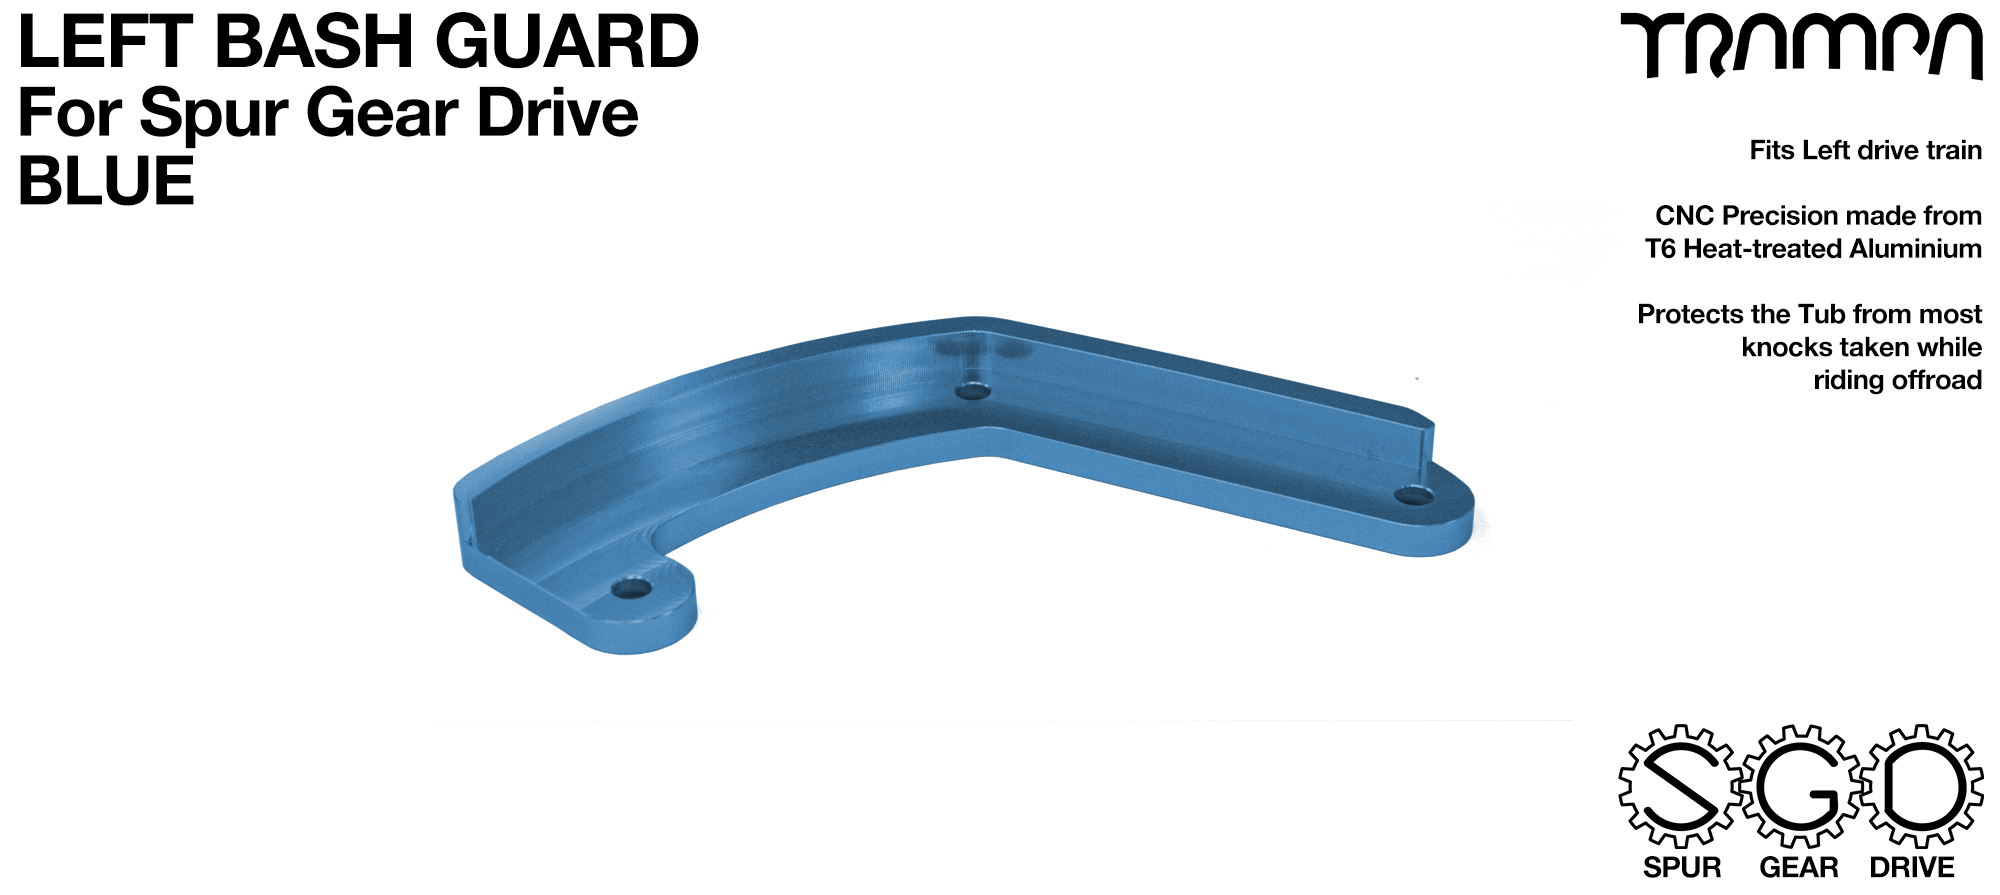 MkII Spur Gear Drive Bash Guard - LEFT Side - BLUE